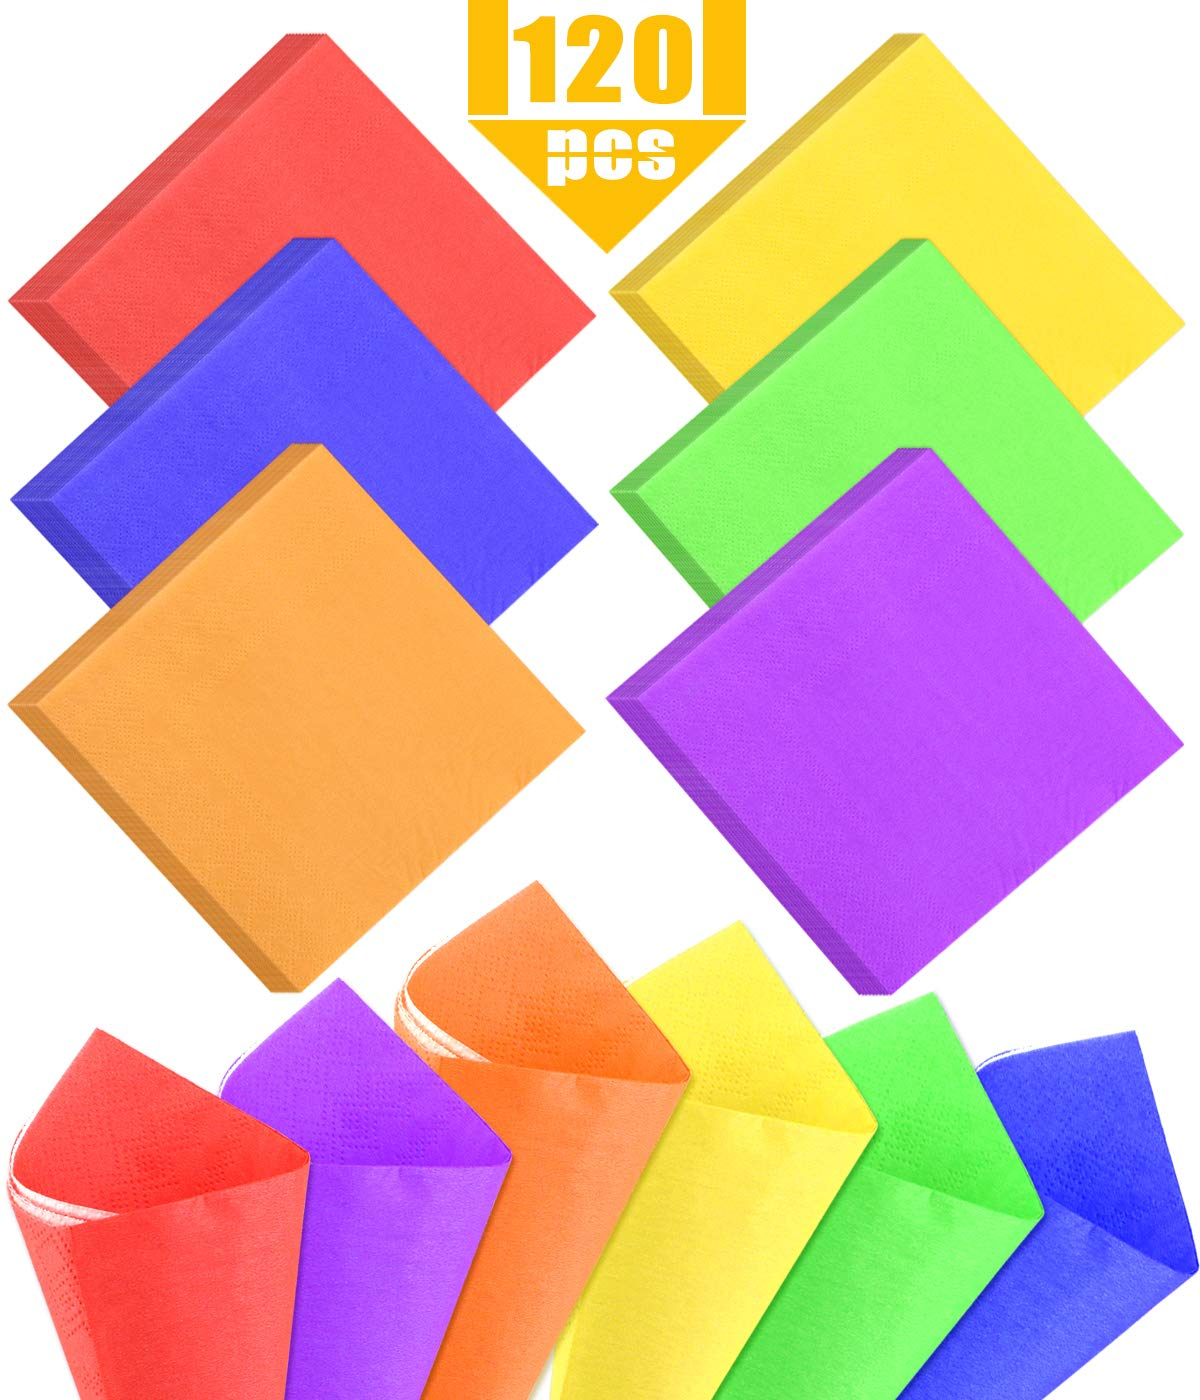 Weoxpr 120 Pieces Rainbow Party Napkins Bright Cocktail Paper Napkin Beverage Luncheon Napkins for Party Supplies, 2 Ply, 10 x 10 Inch, 6 Colors